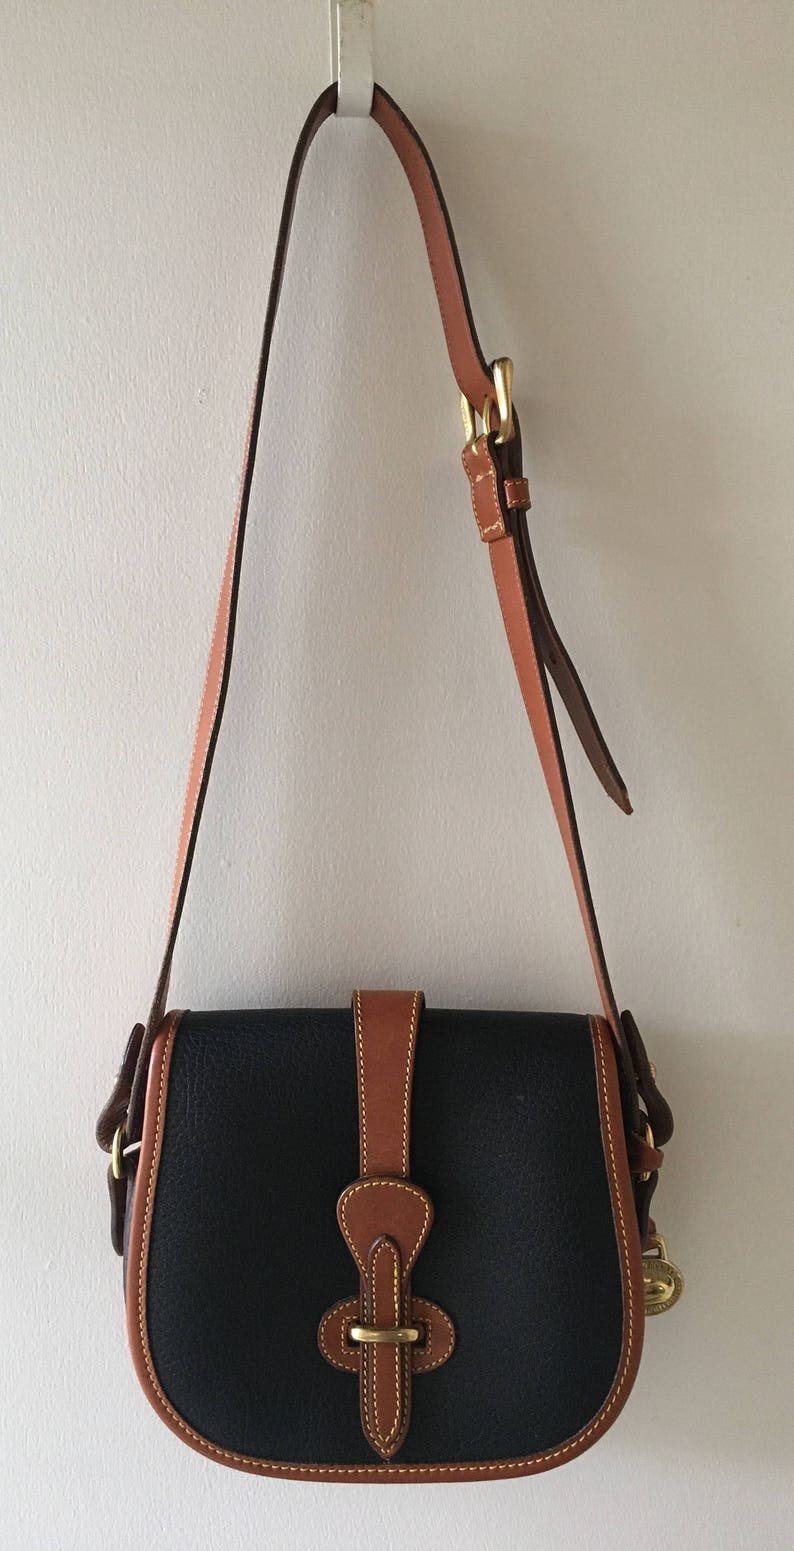 0a94e63d6307 Dooney and Bourke Bag - Leather - All Weather - Saddle Bag - Equestrian -  Navy and Brown - Vintage - G1